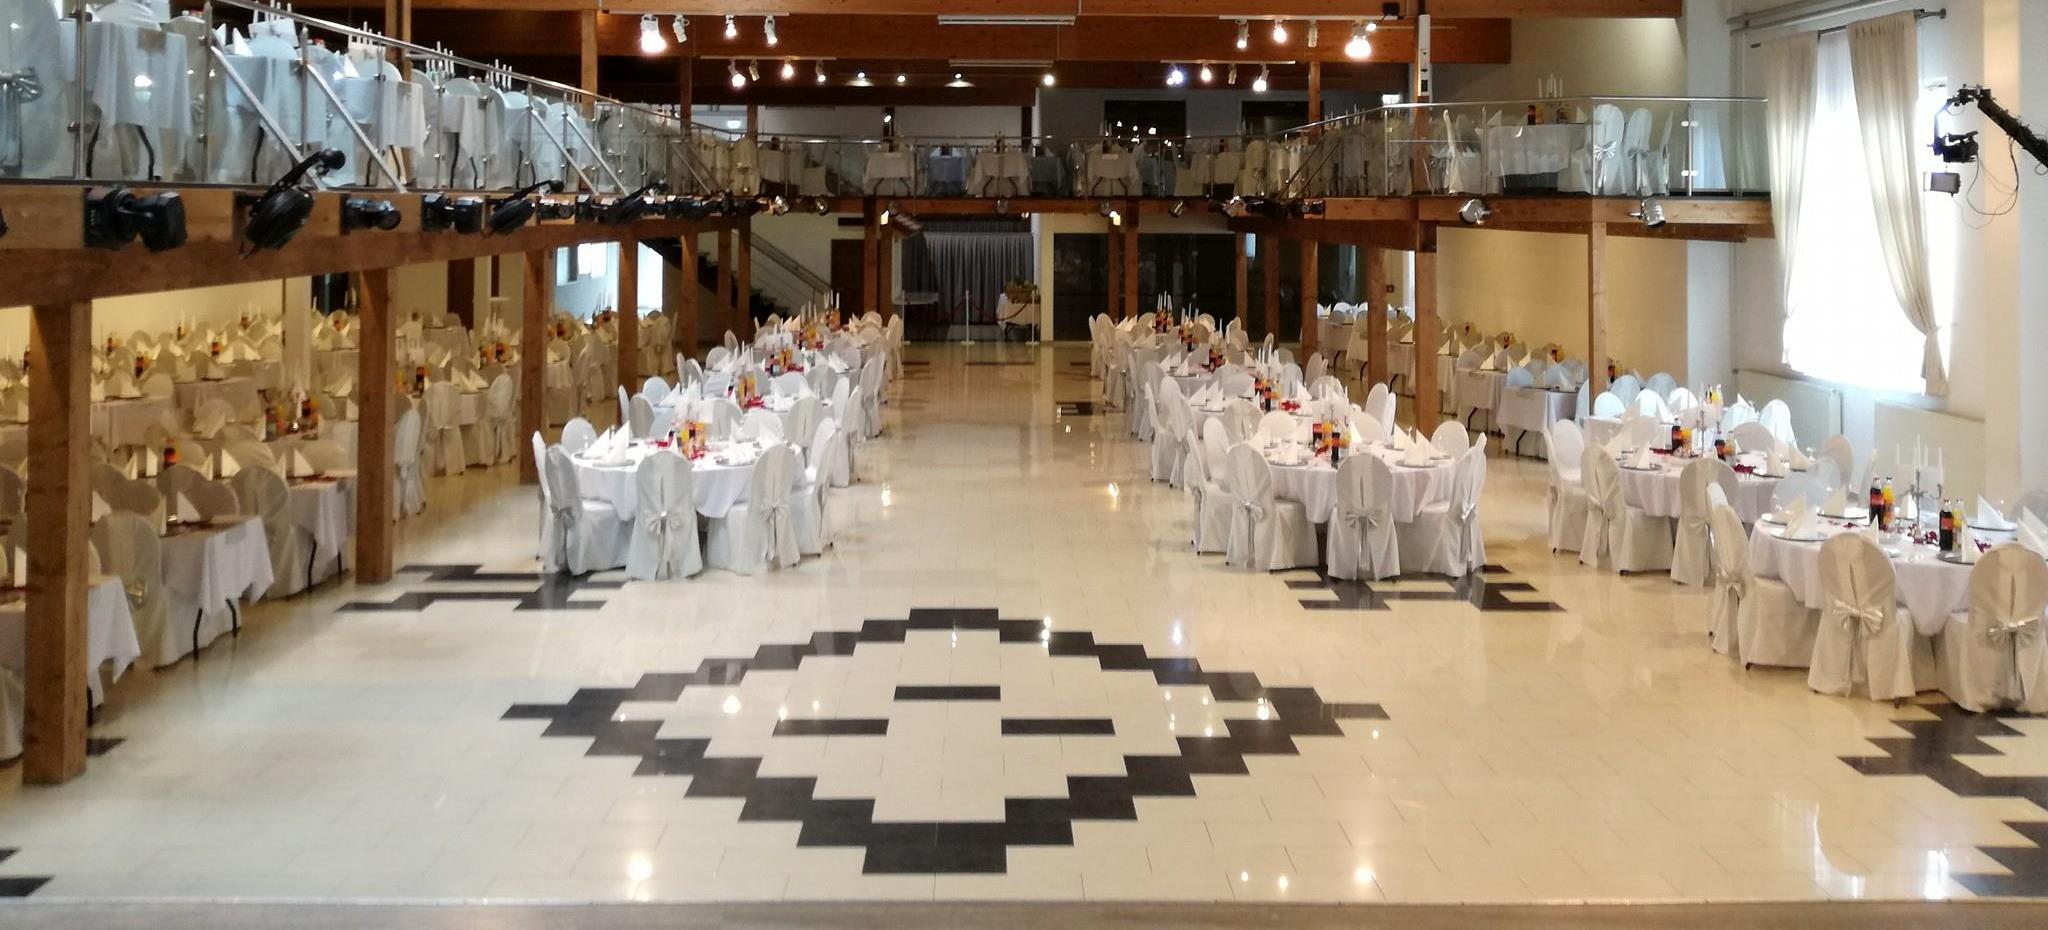 Gourmet Berner Hochzeit Locations Event Catering More